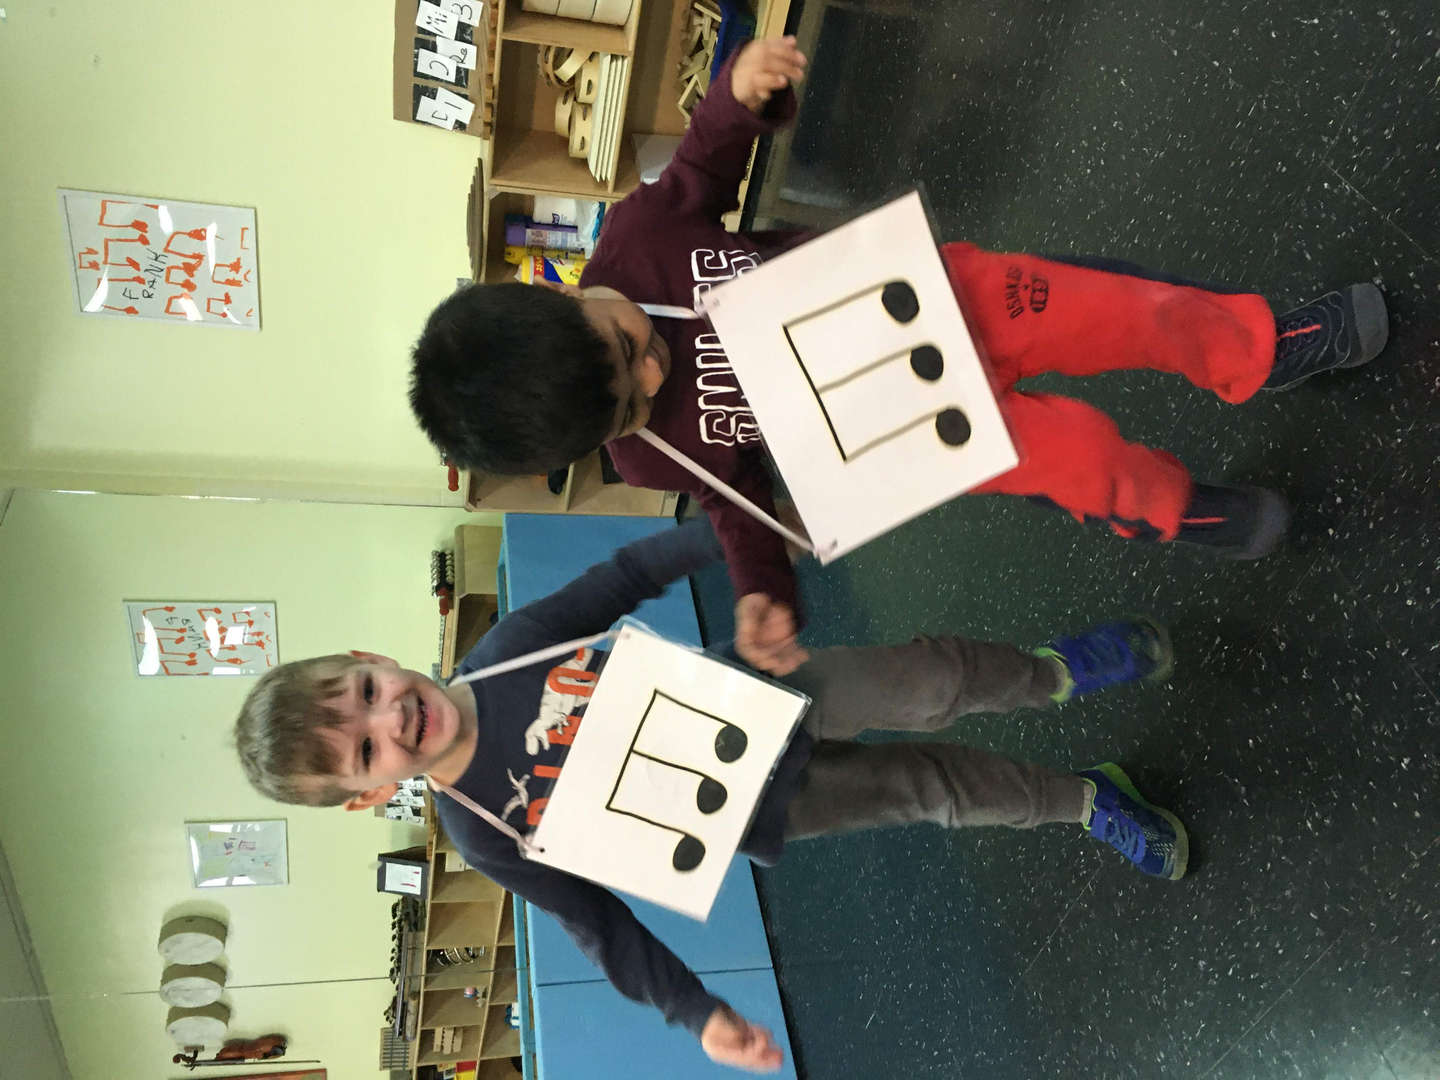 Two boys with signs that represent musical notes